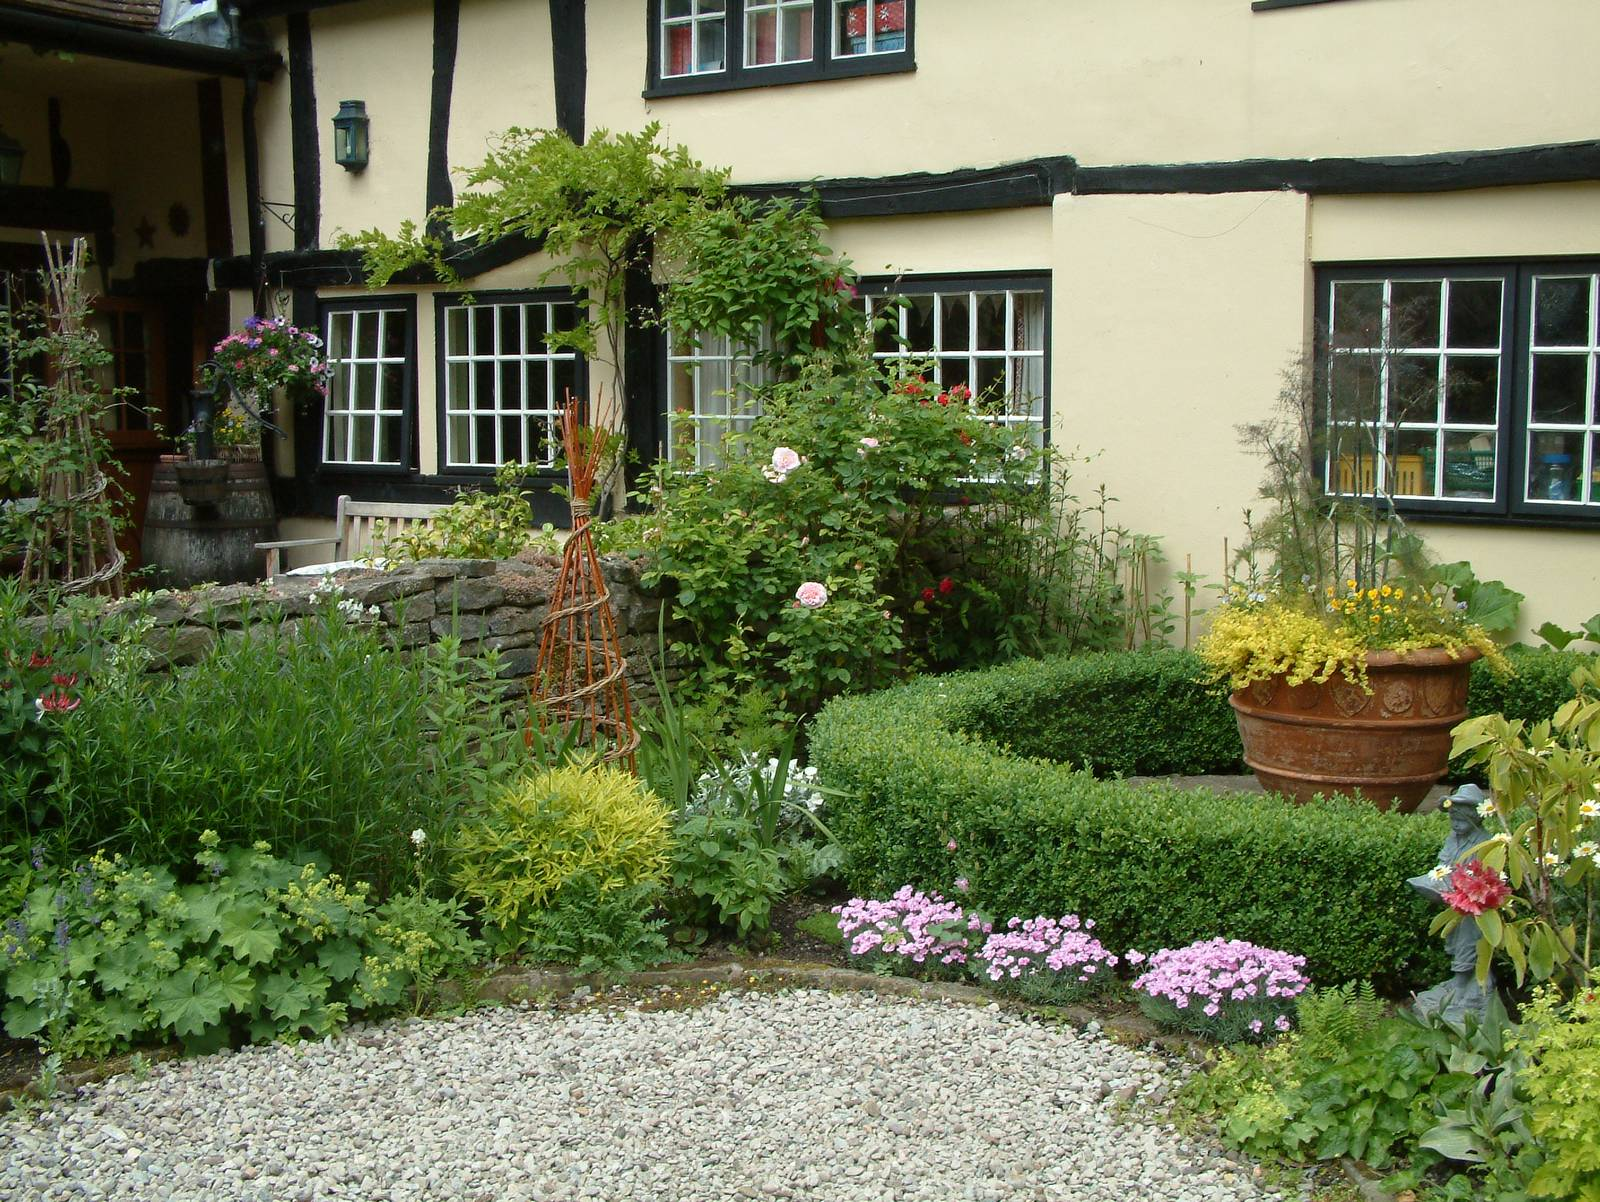 Landscape gardeners and garden designers in Redditch New English